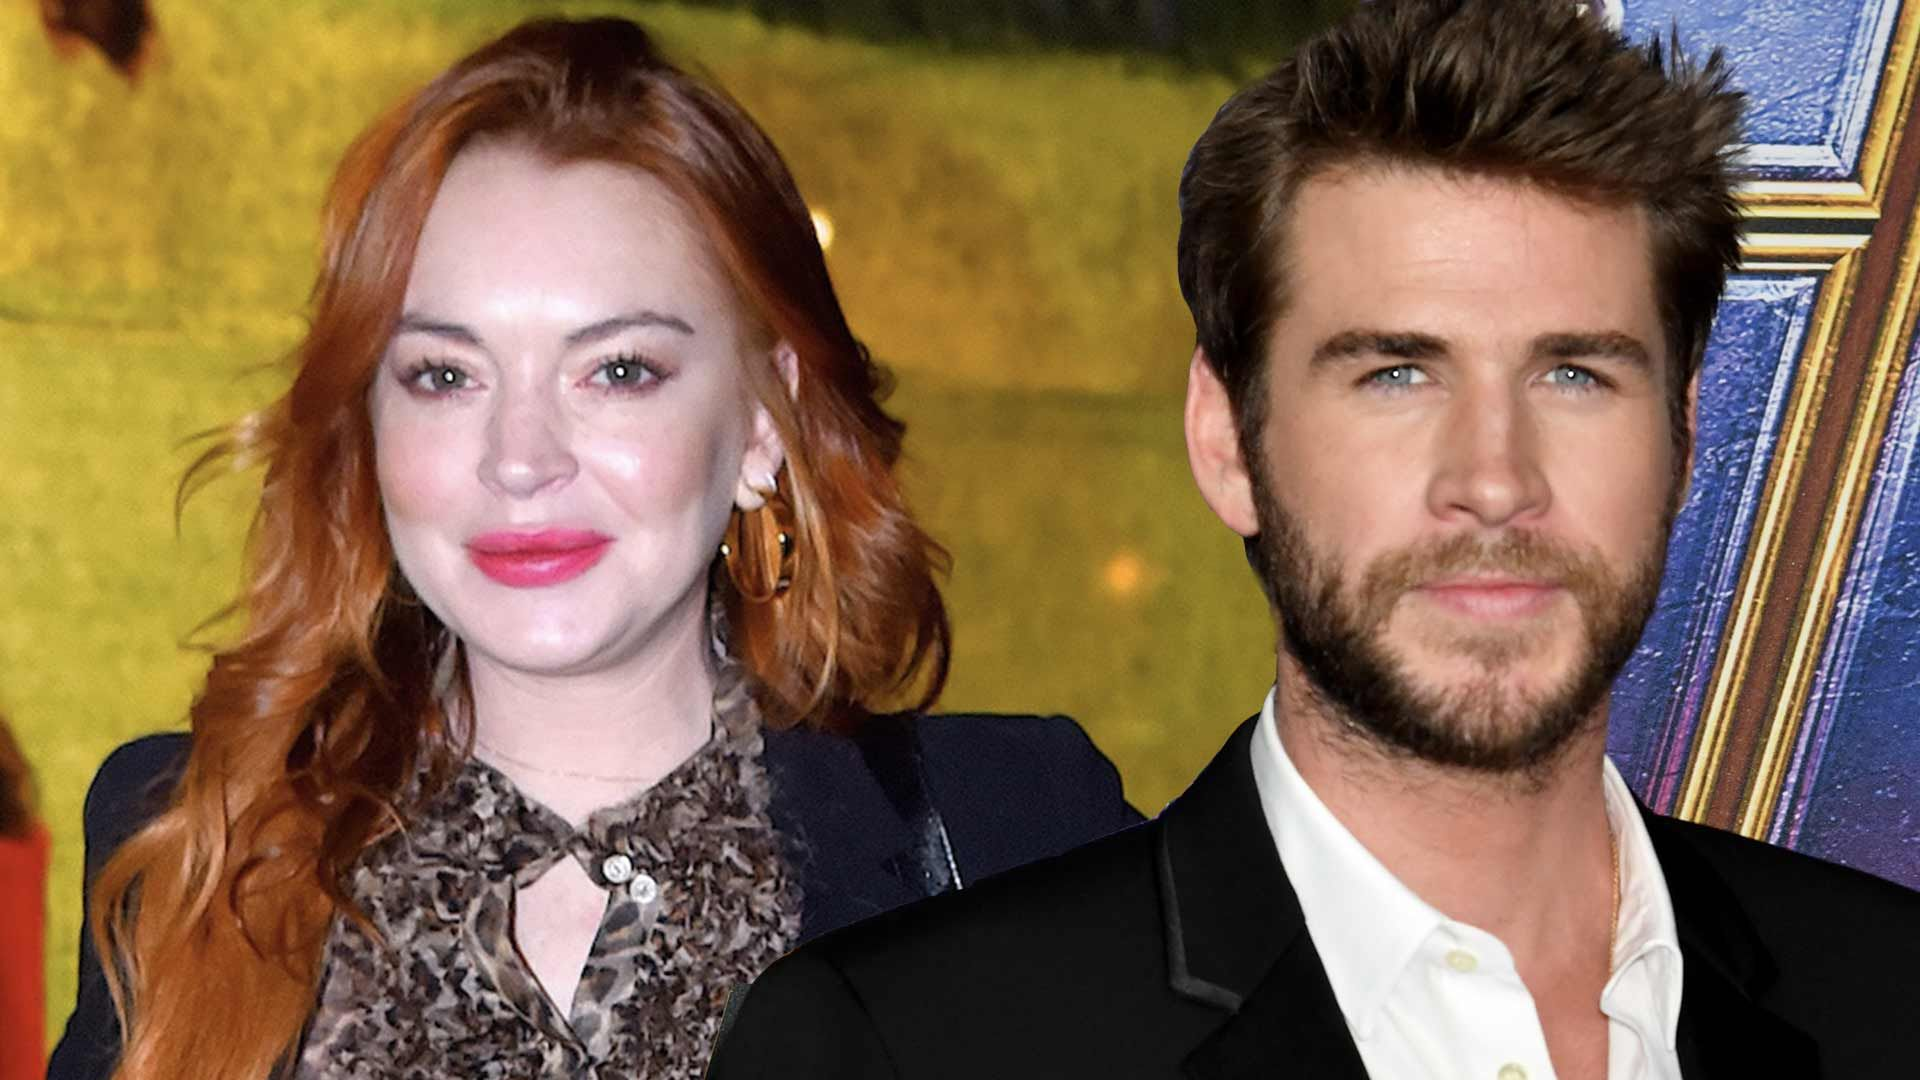 Liam Hemsworth moved from Miley Cyrus, report